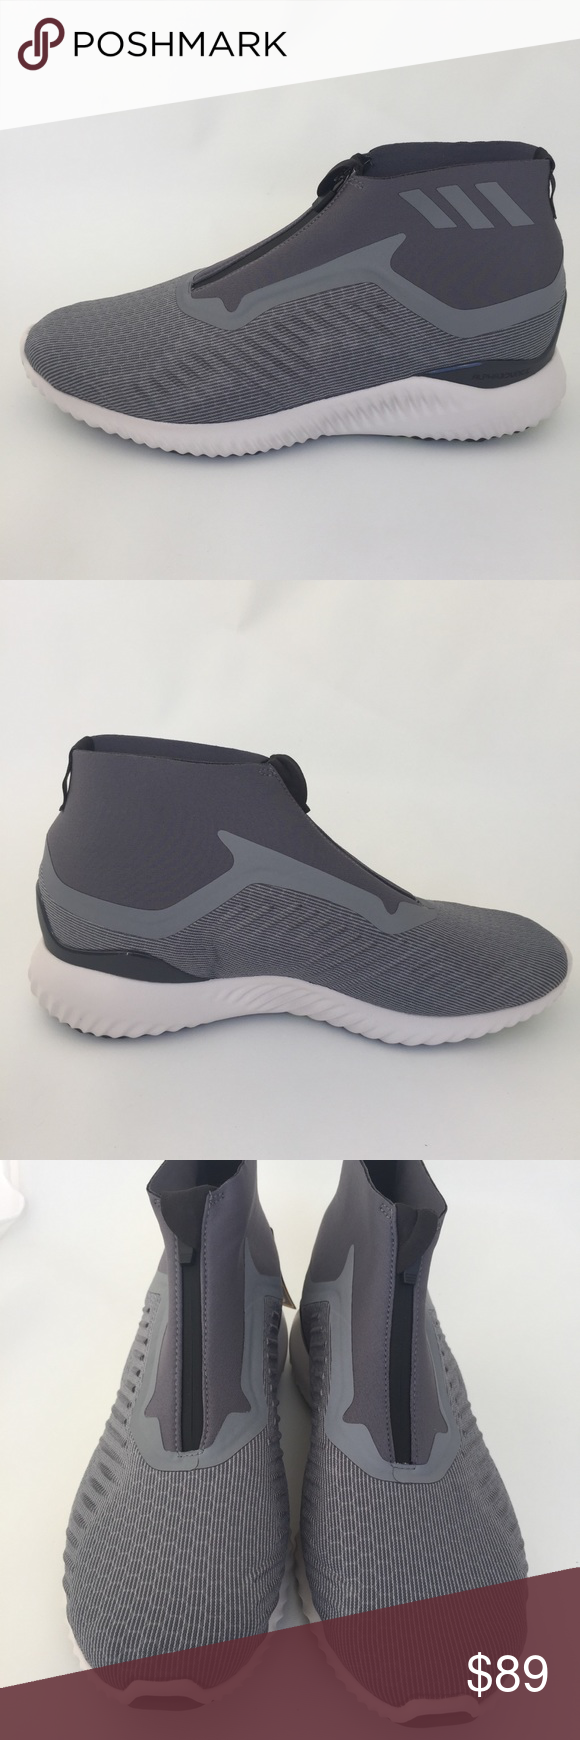 check out 1da73 32366 Adidas Alphabounce 5.8 Zip Running Winter Bootee Adidas Alphabounce Running  Shoes Laceless Zip Closure Continental Rubber Outsole for Traction Style  BW1385 ...